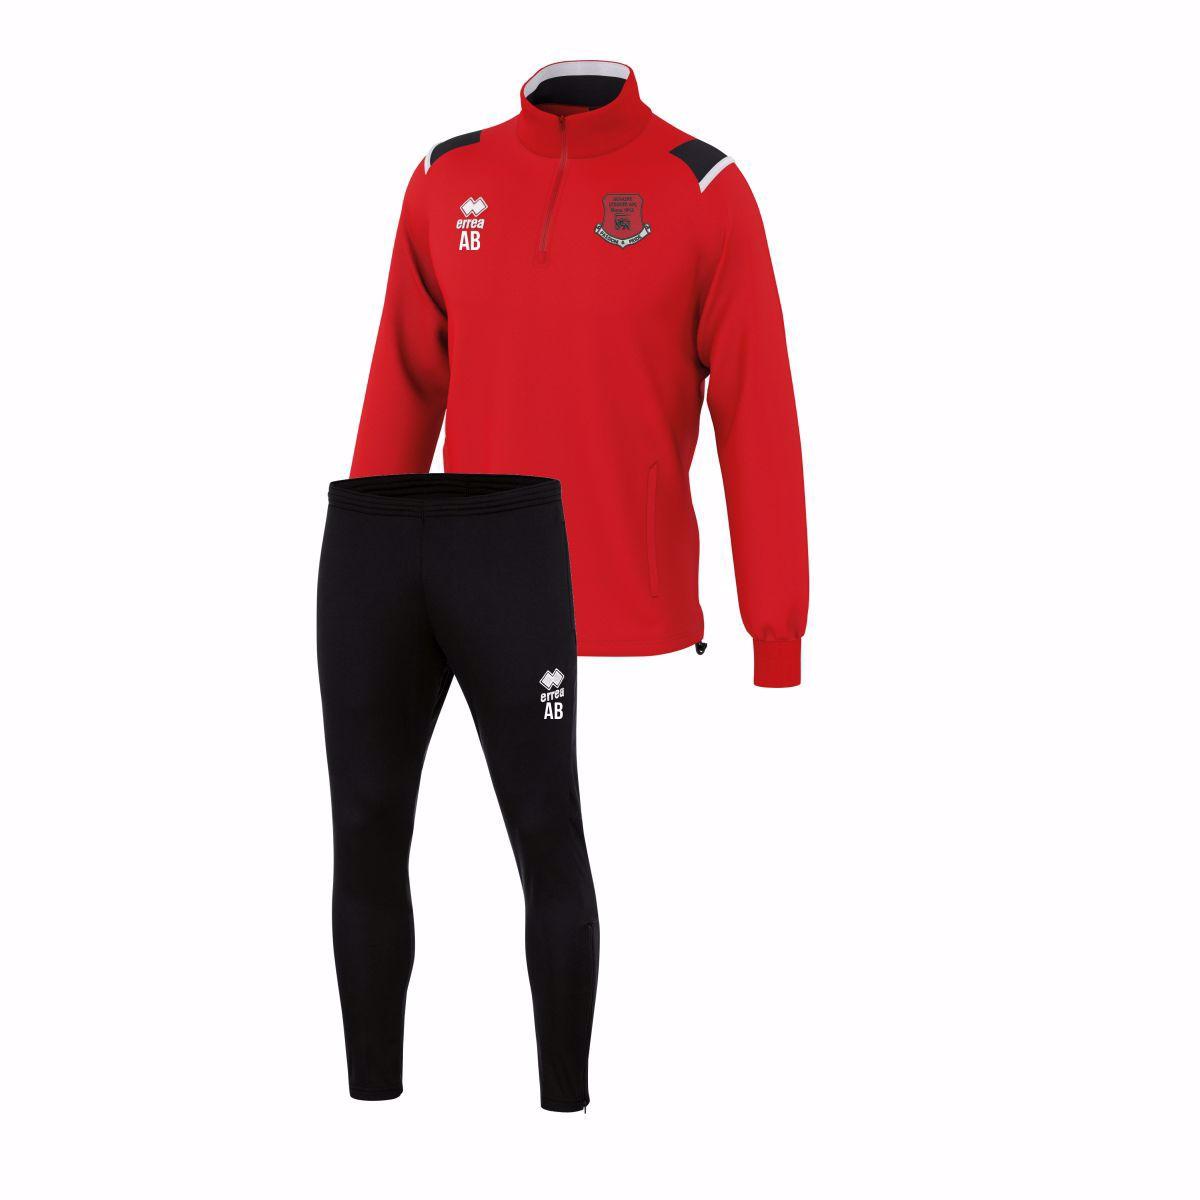 BISHOPS LYDEARDS FC TRACKSUIT - Junior